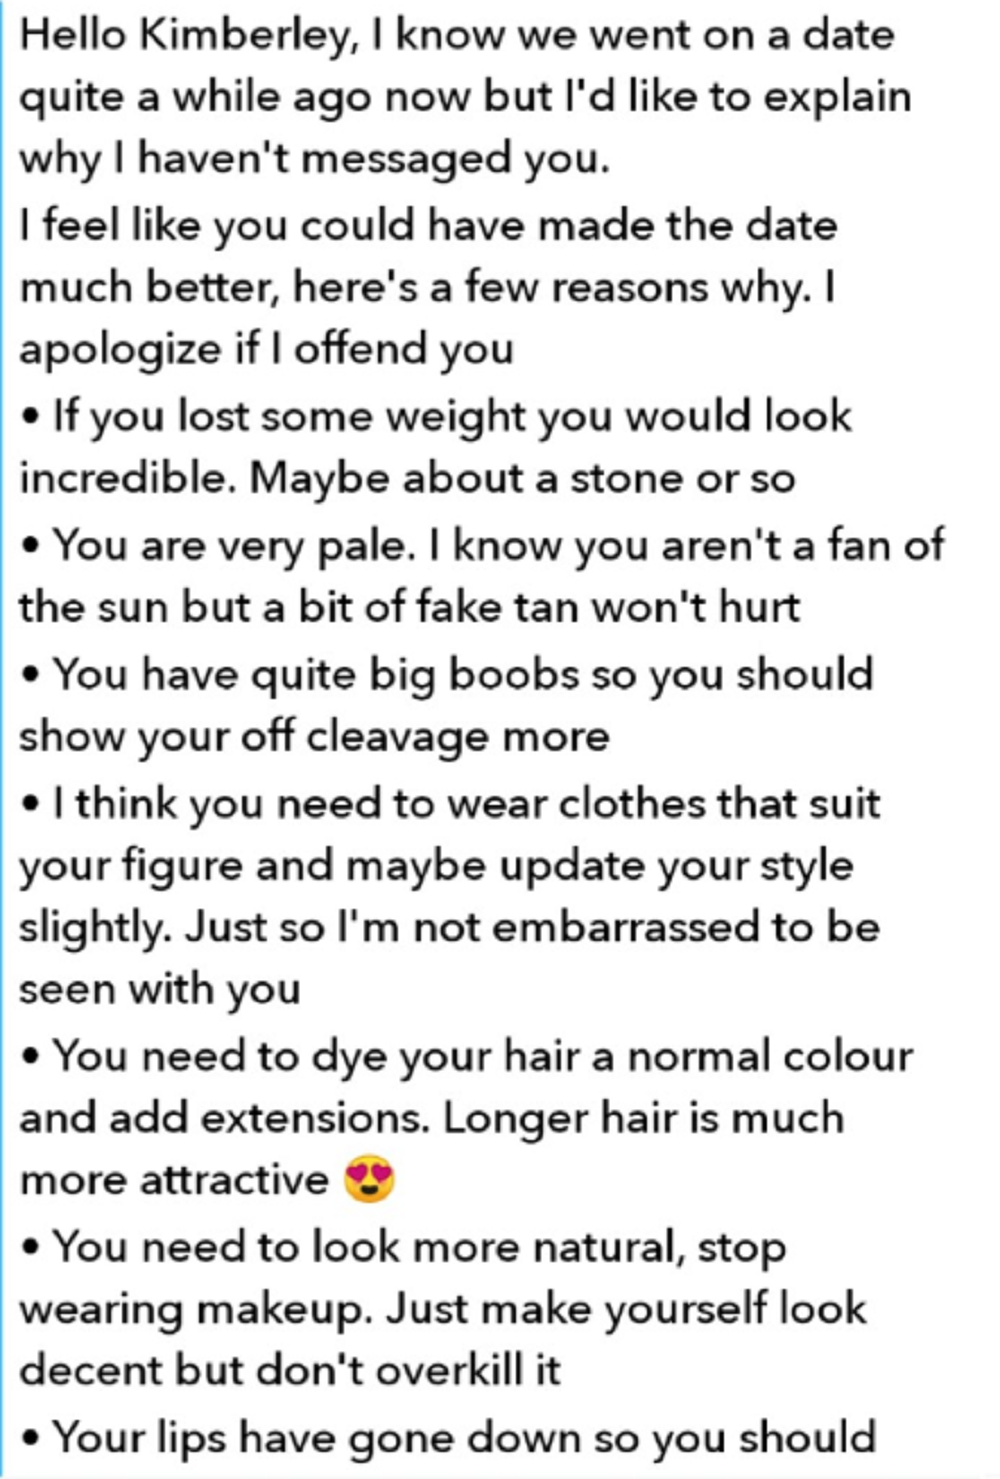 An extract from Wayne Kerr's messages to Kimberley. Credit: Kimberley Latham-Hawkesford